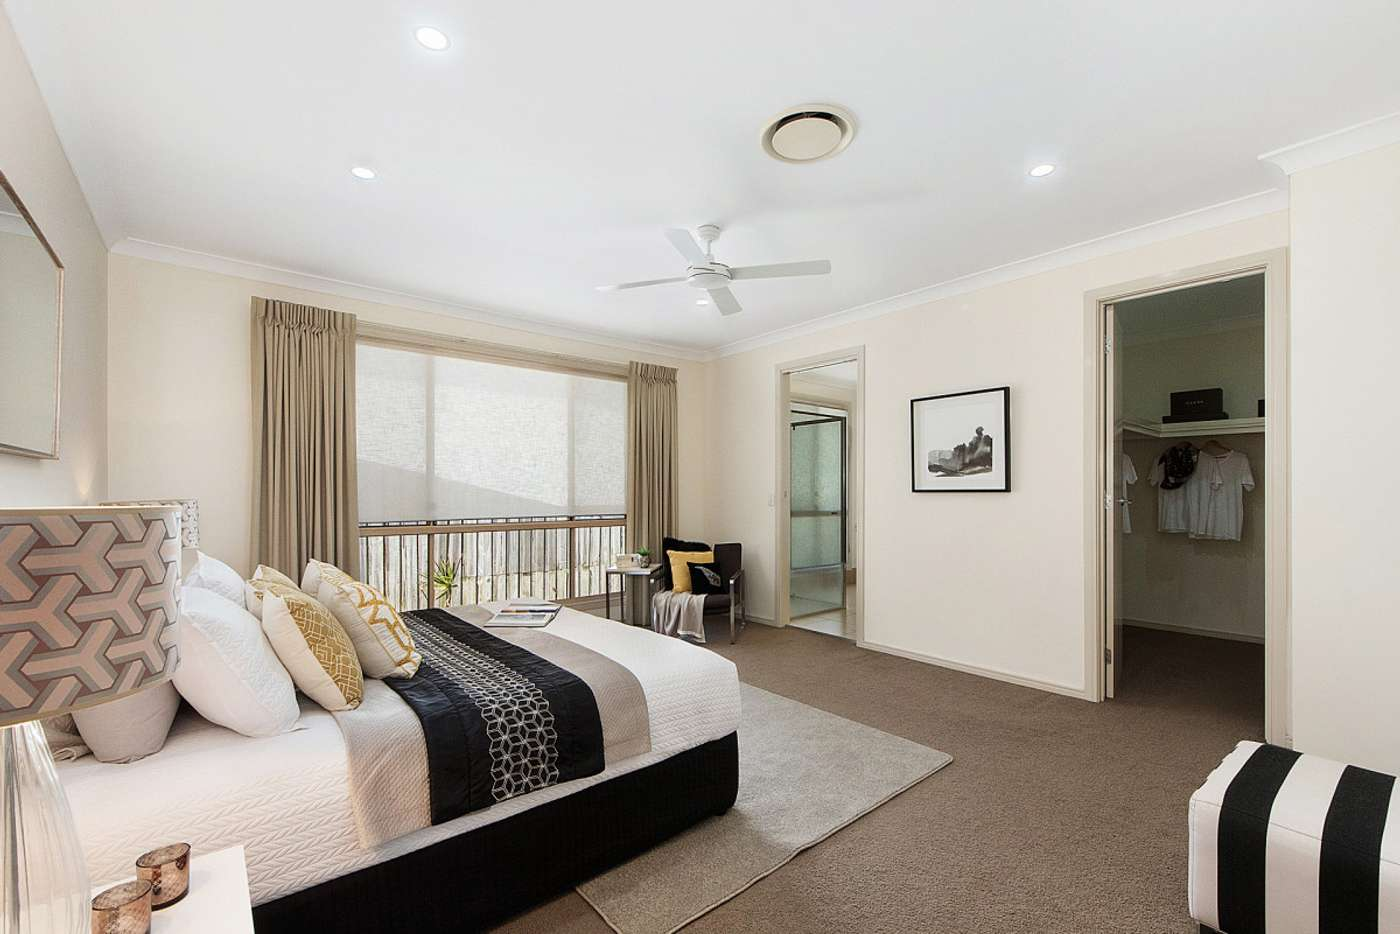 Sixth view of Homely house listing, 9 Stockport Court, Reedy Creek QLD 4227